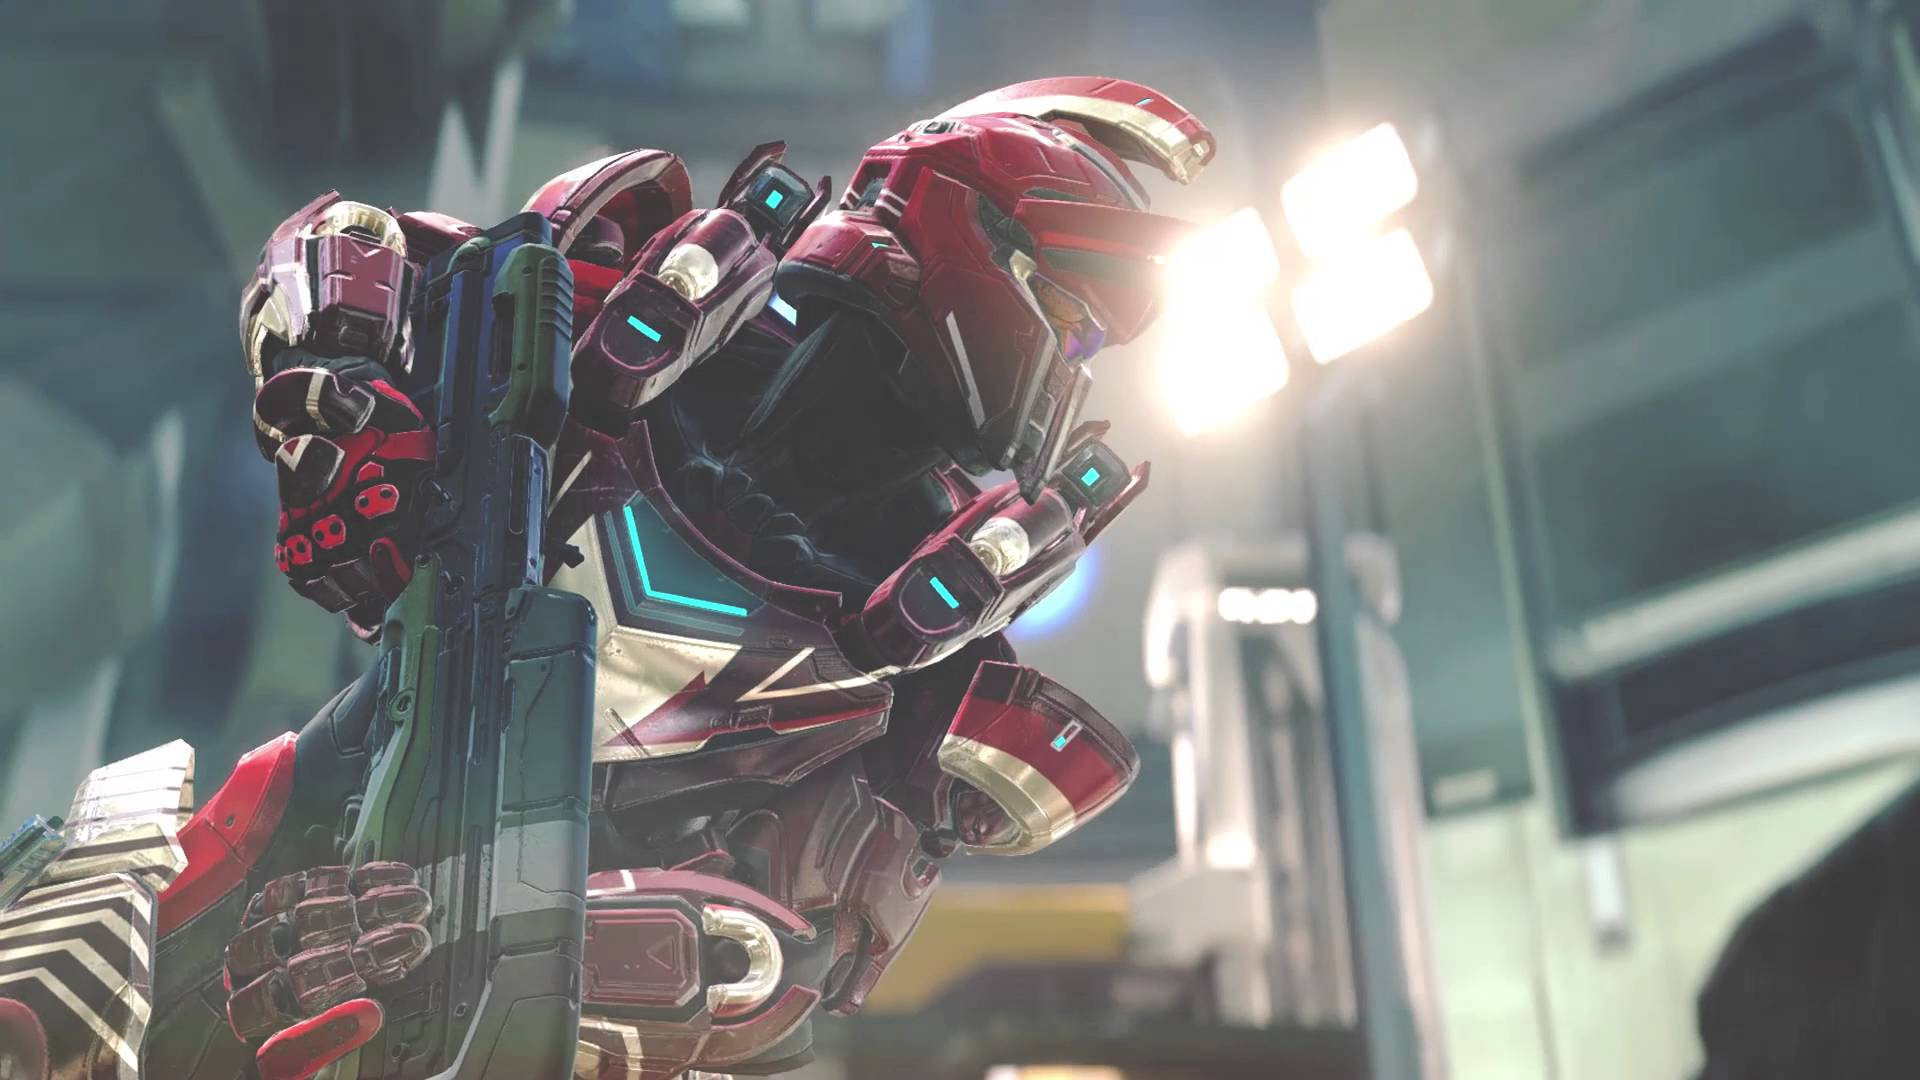 Halo 5: Guardians - Infinity's Armory Launch Trailer